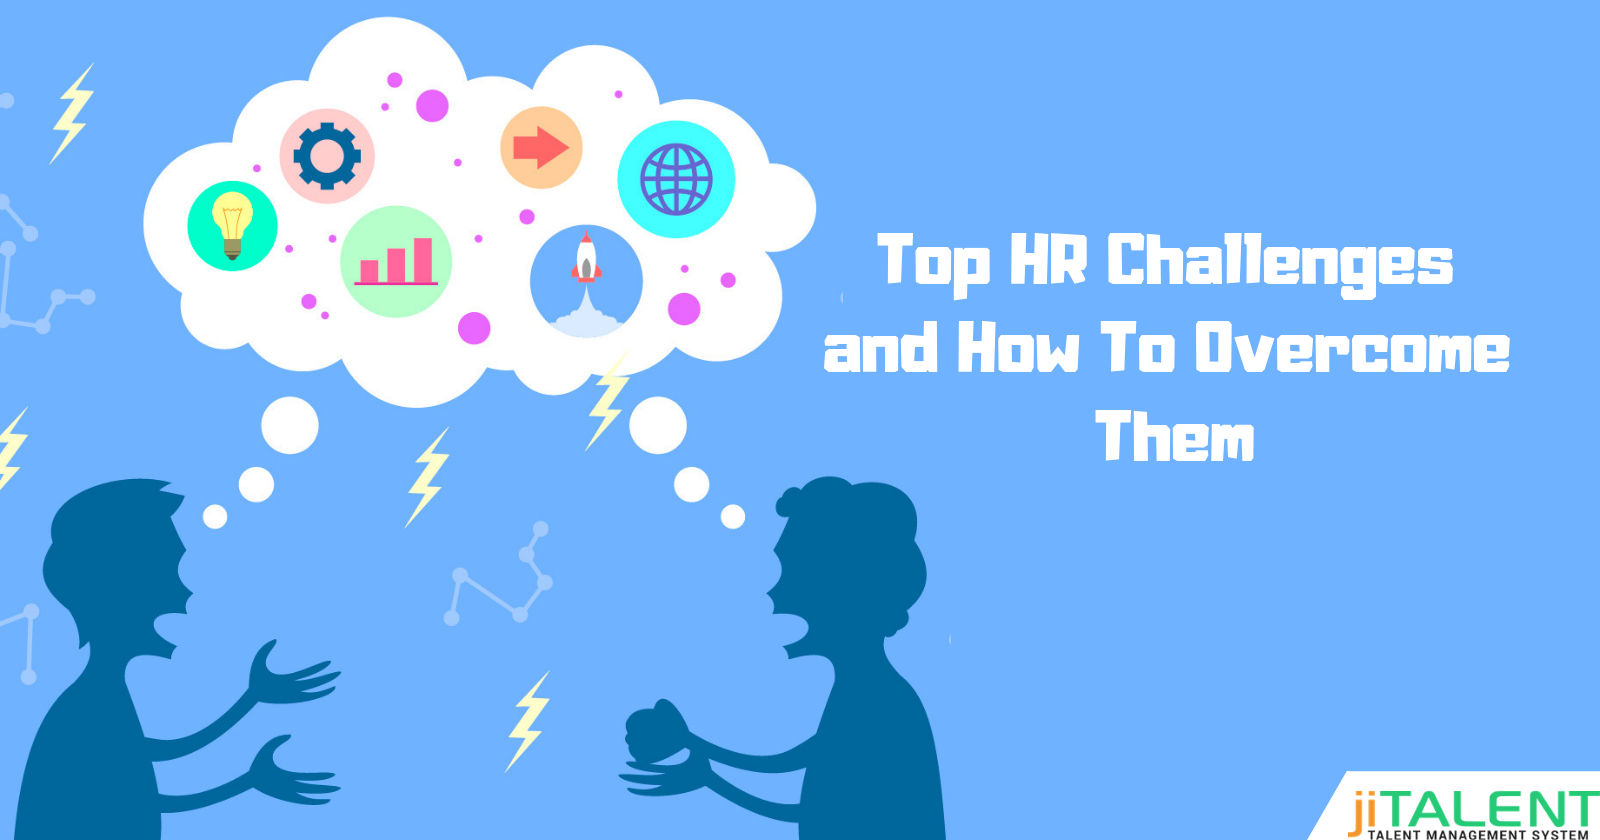 How To Overcome The Most Common HR Challenges